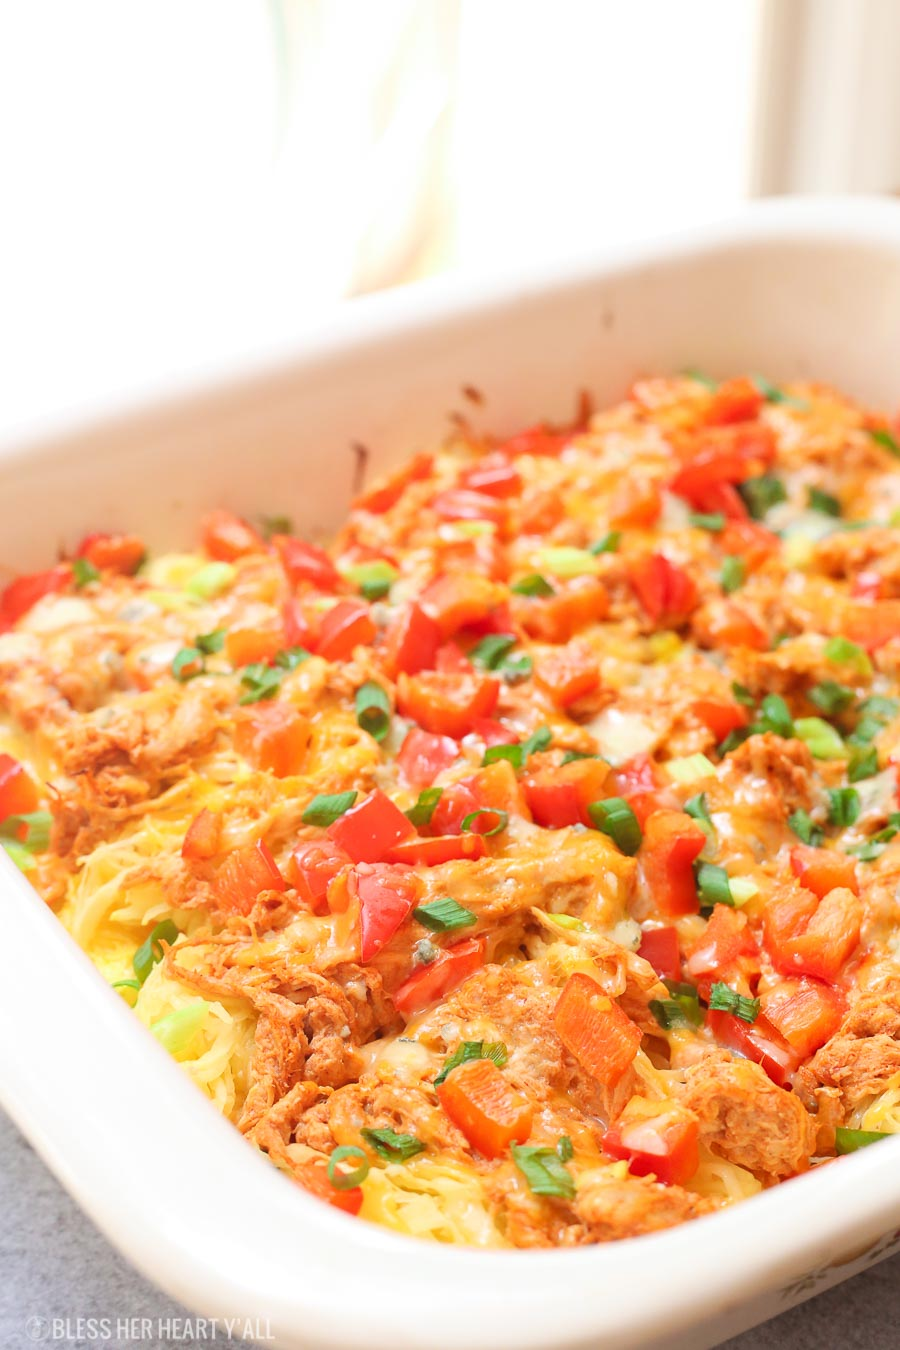 Skinny buffalo chicken spaghetti squash bake combines creamy flavor-packed buffalo chicken with fresh veggies and blue cheese crumbles all on a bed of spaghetti squash!